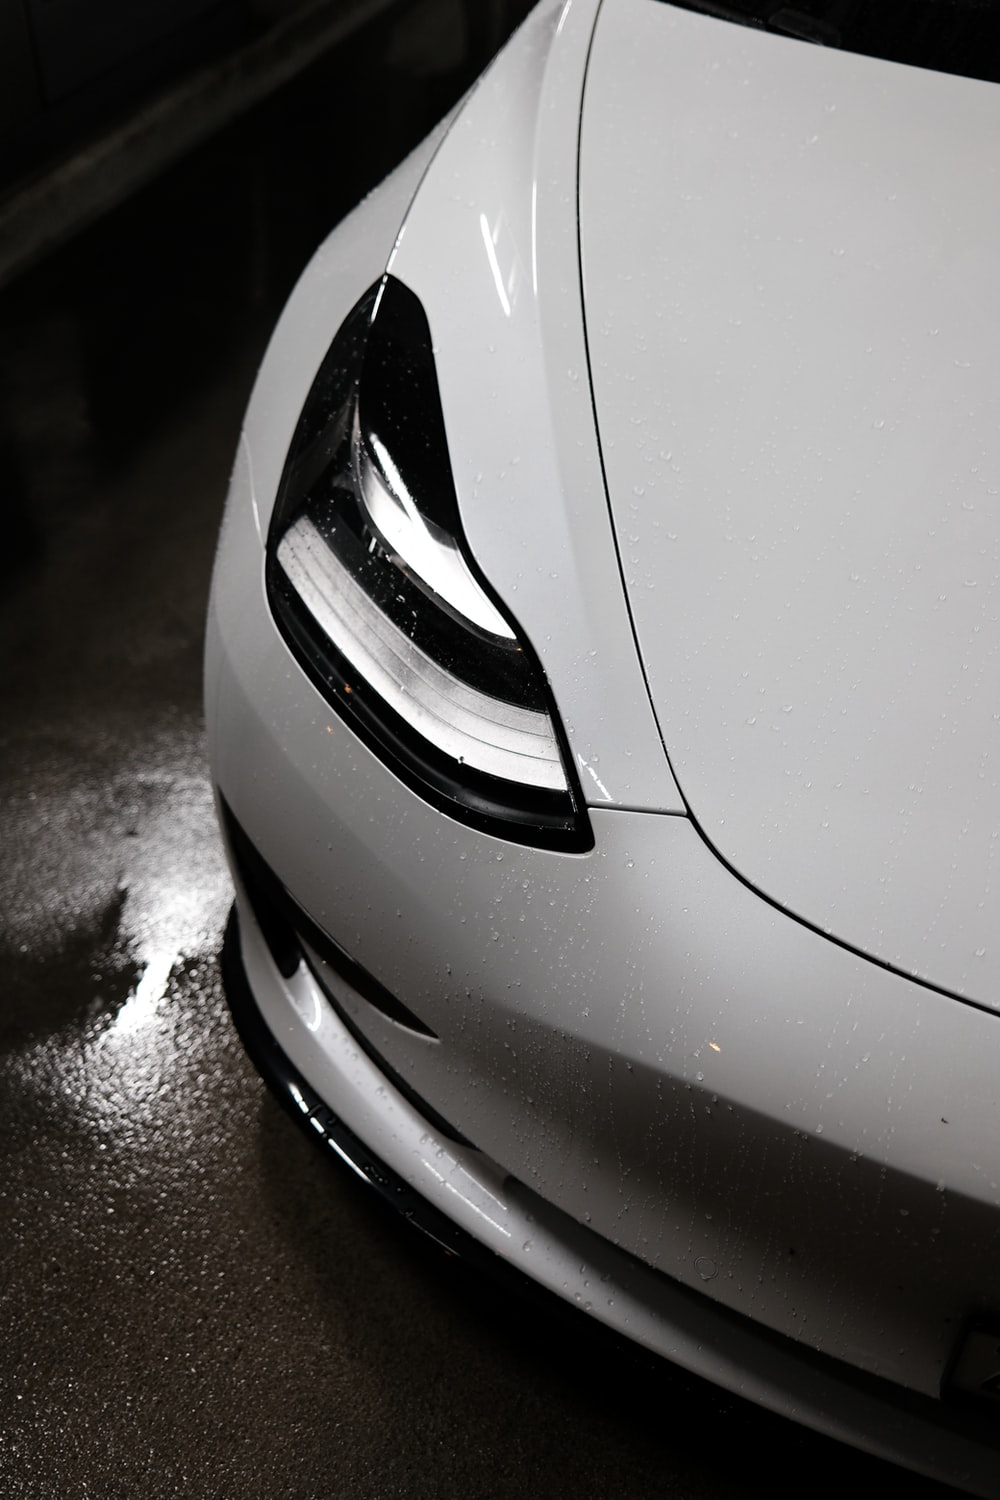 white and black car in grayscale photography